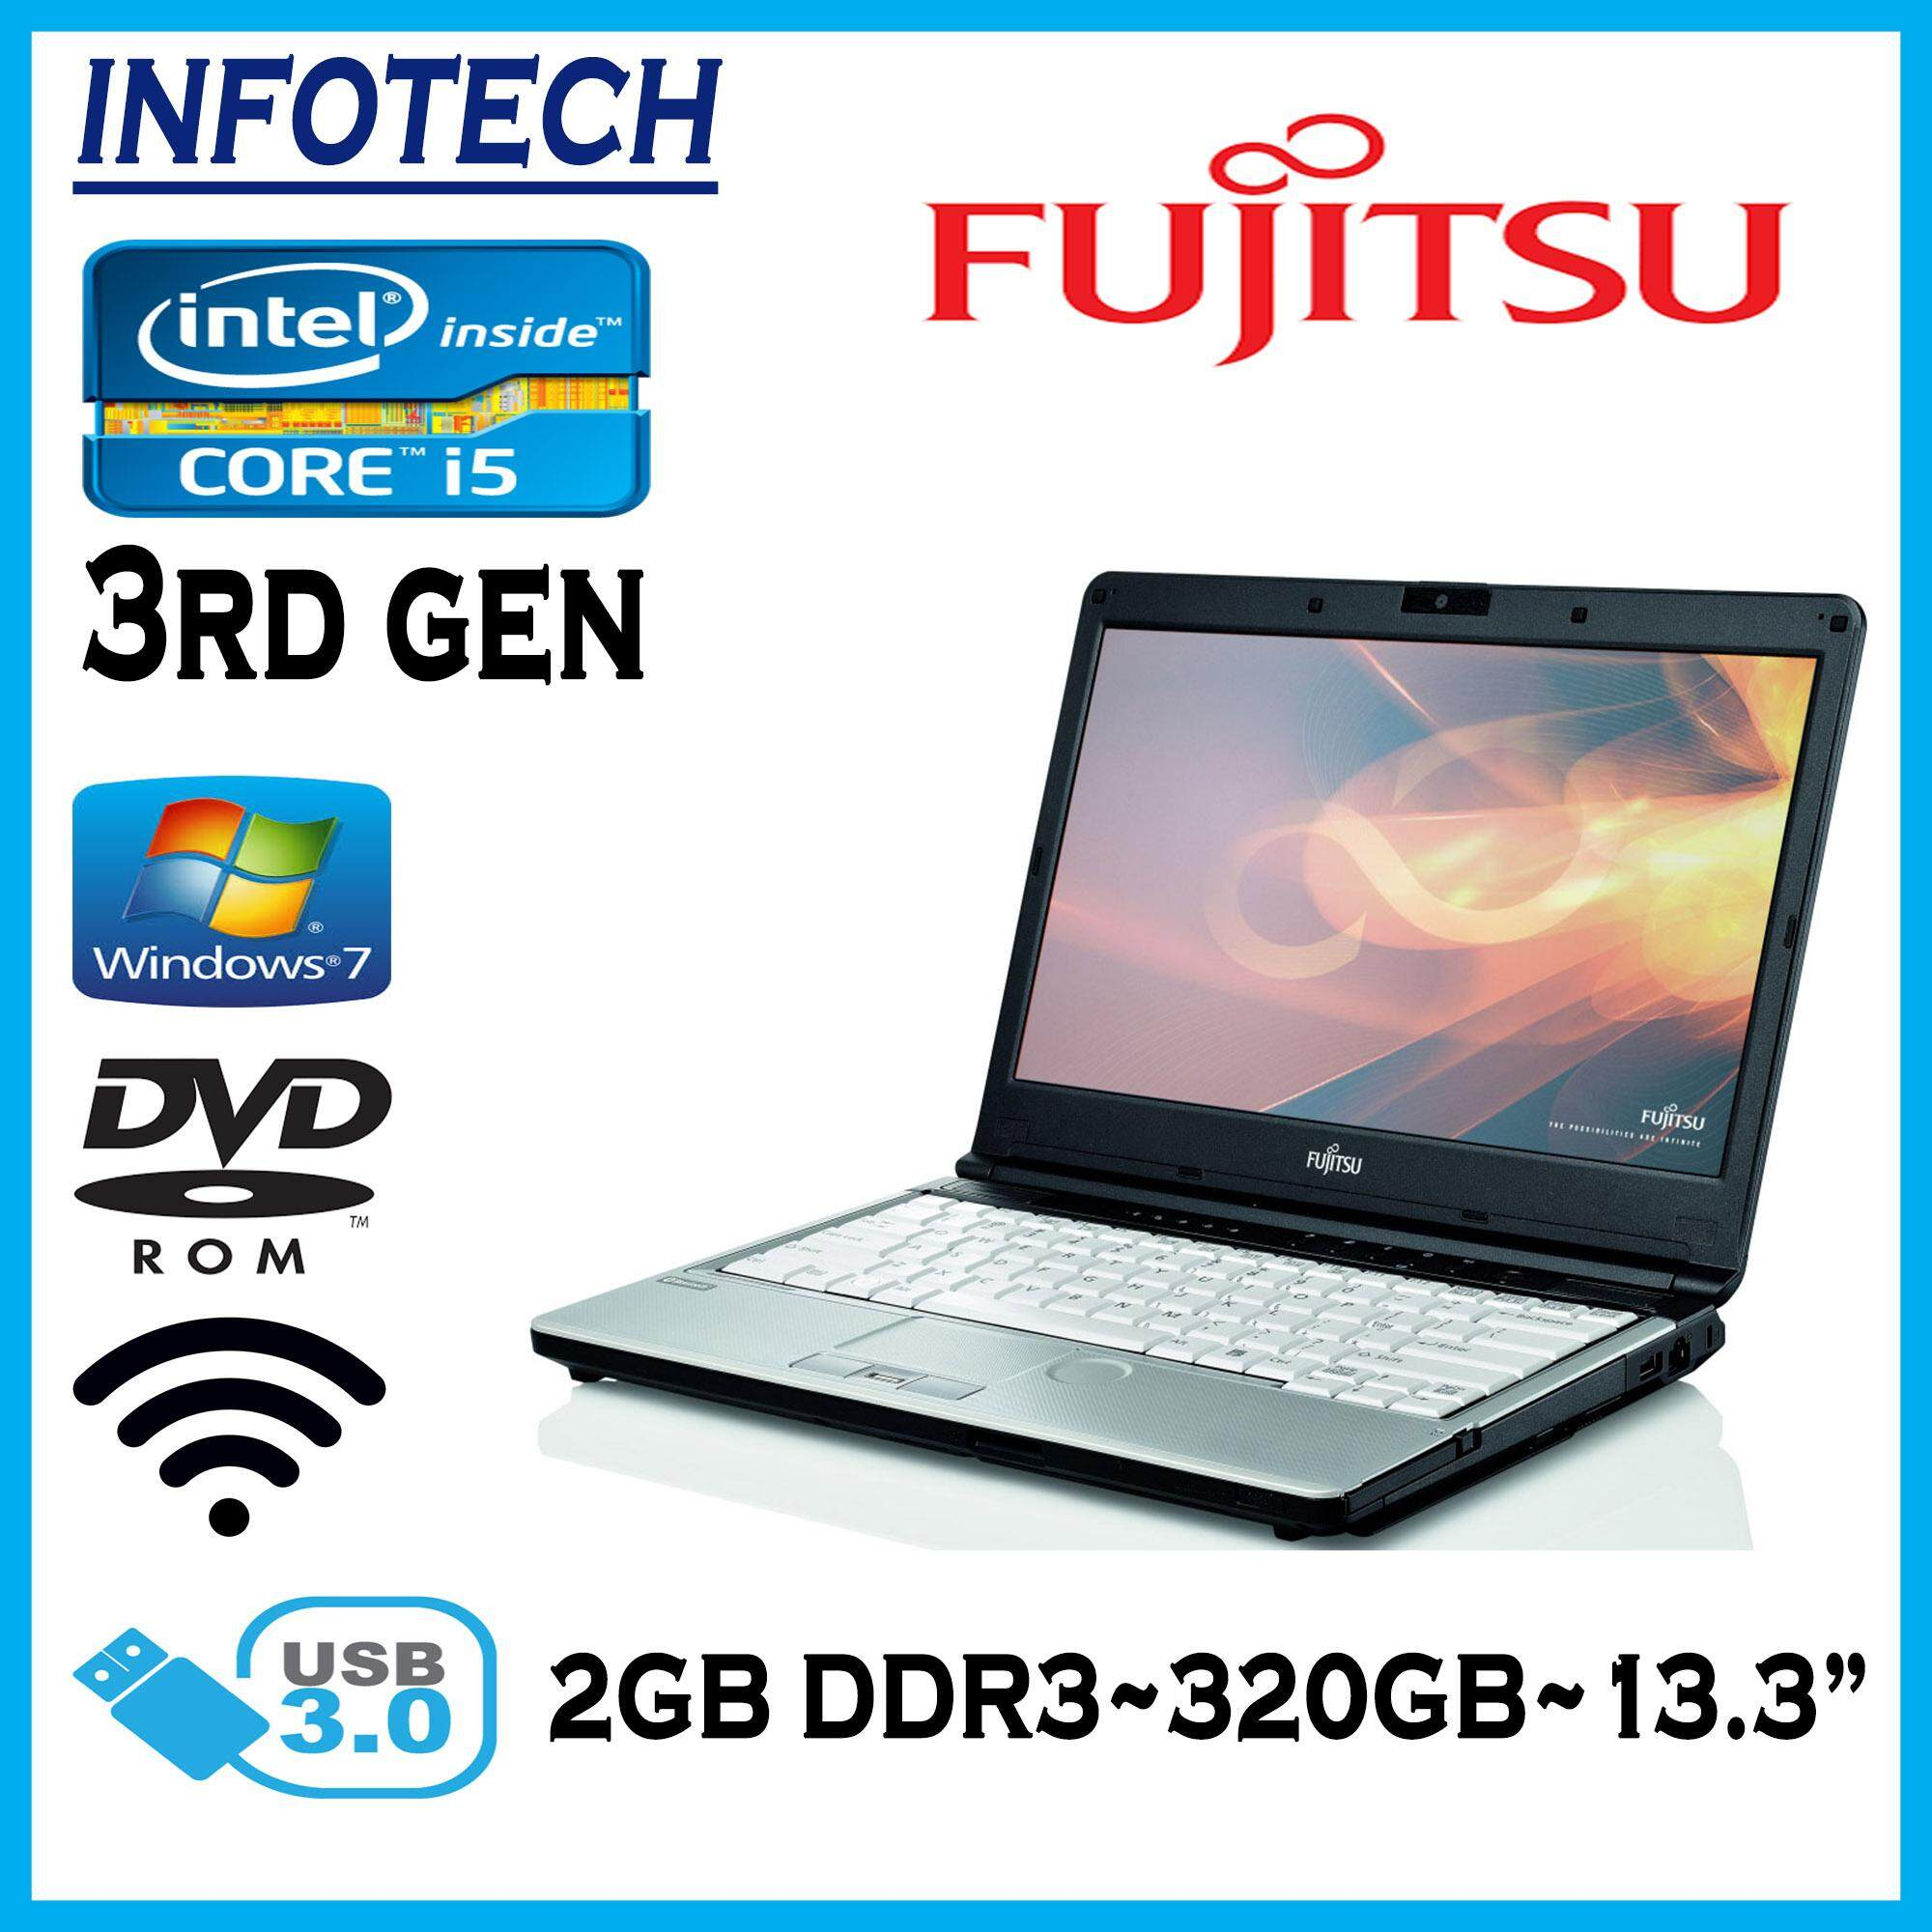 Fujitsu S762 intel core i5 3rd gen 320GB 2GB DVD USB3.0 w7pro LAPTOP NOTEBOOK (Refurbished) Malaysia